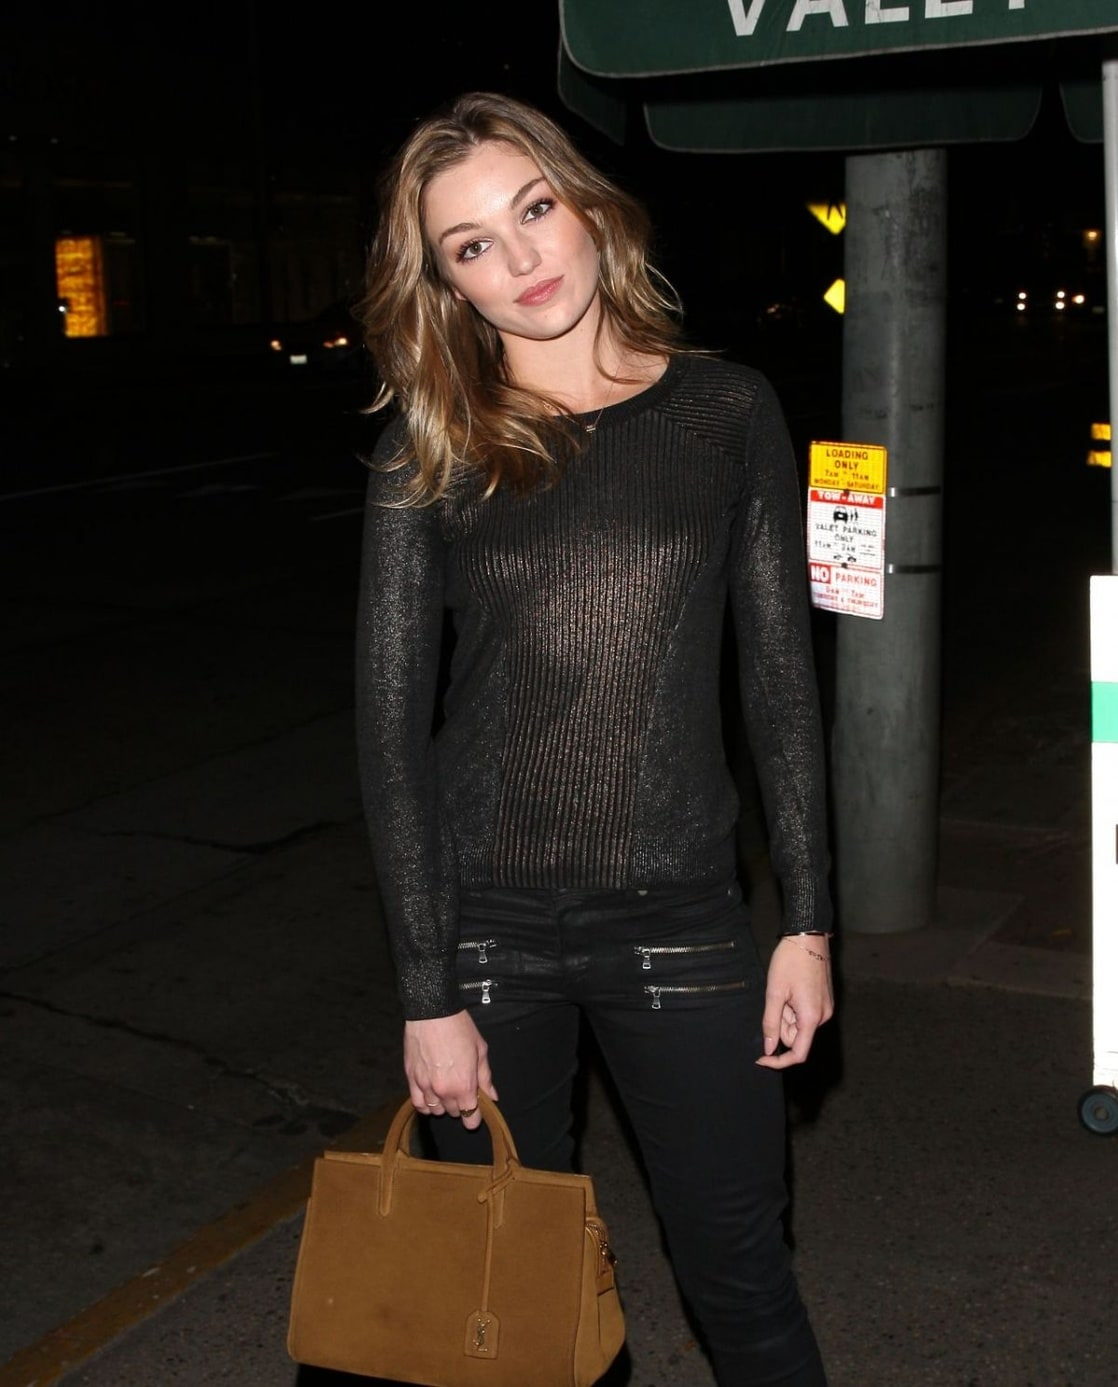 Paparazzi Lili Simmons nude (91 foto and video), Tits, Leaked, Twitter, cleavage 2019